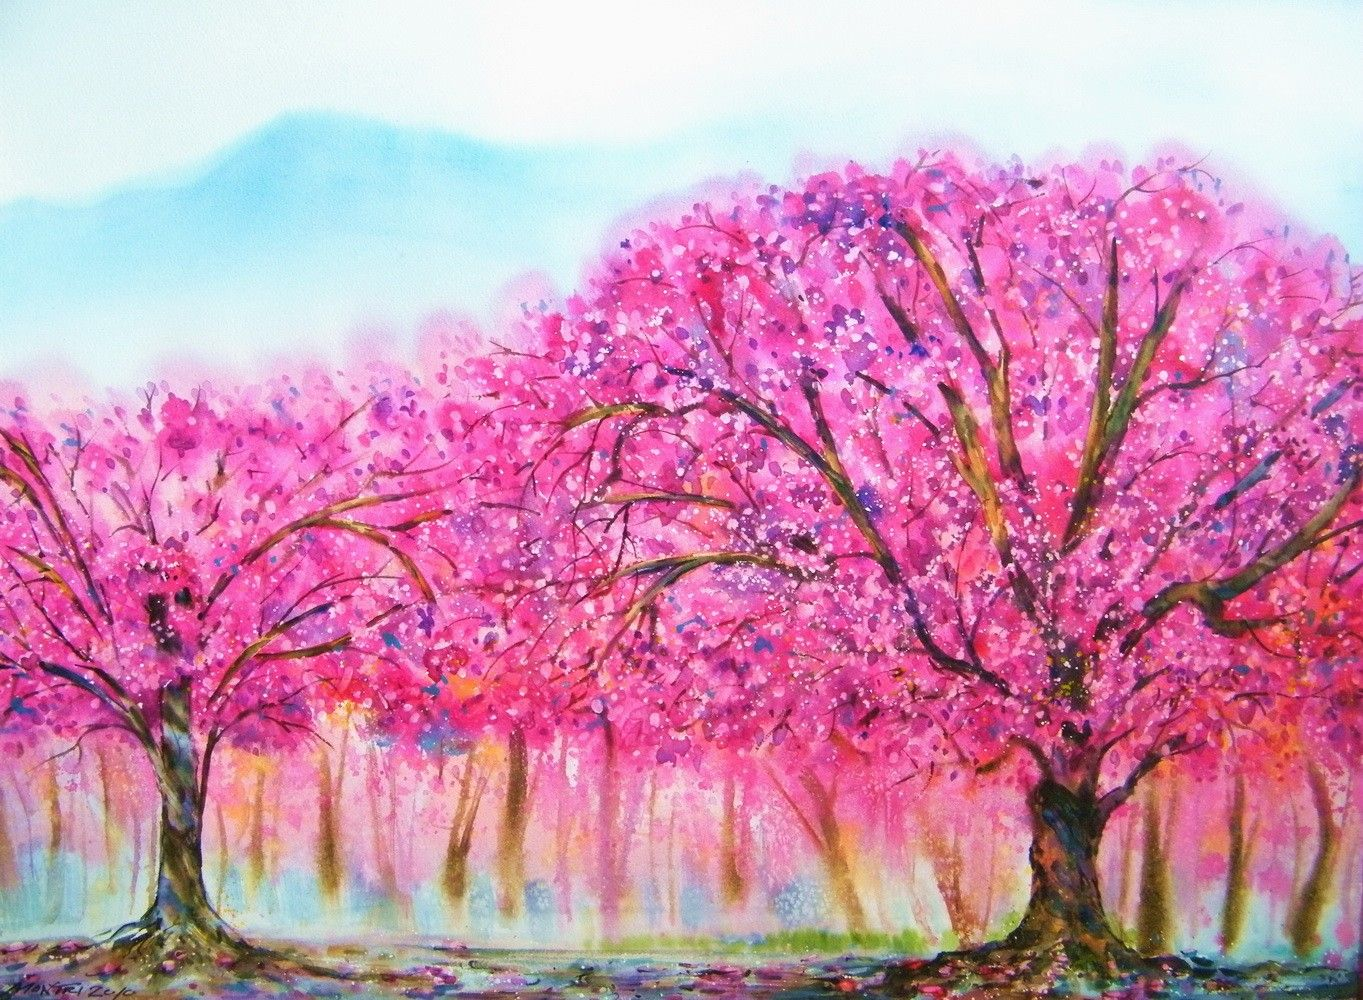 Etsy watercolor paintings cherry blossom season for Simple cherry blossom painting